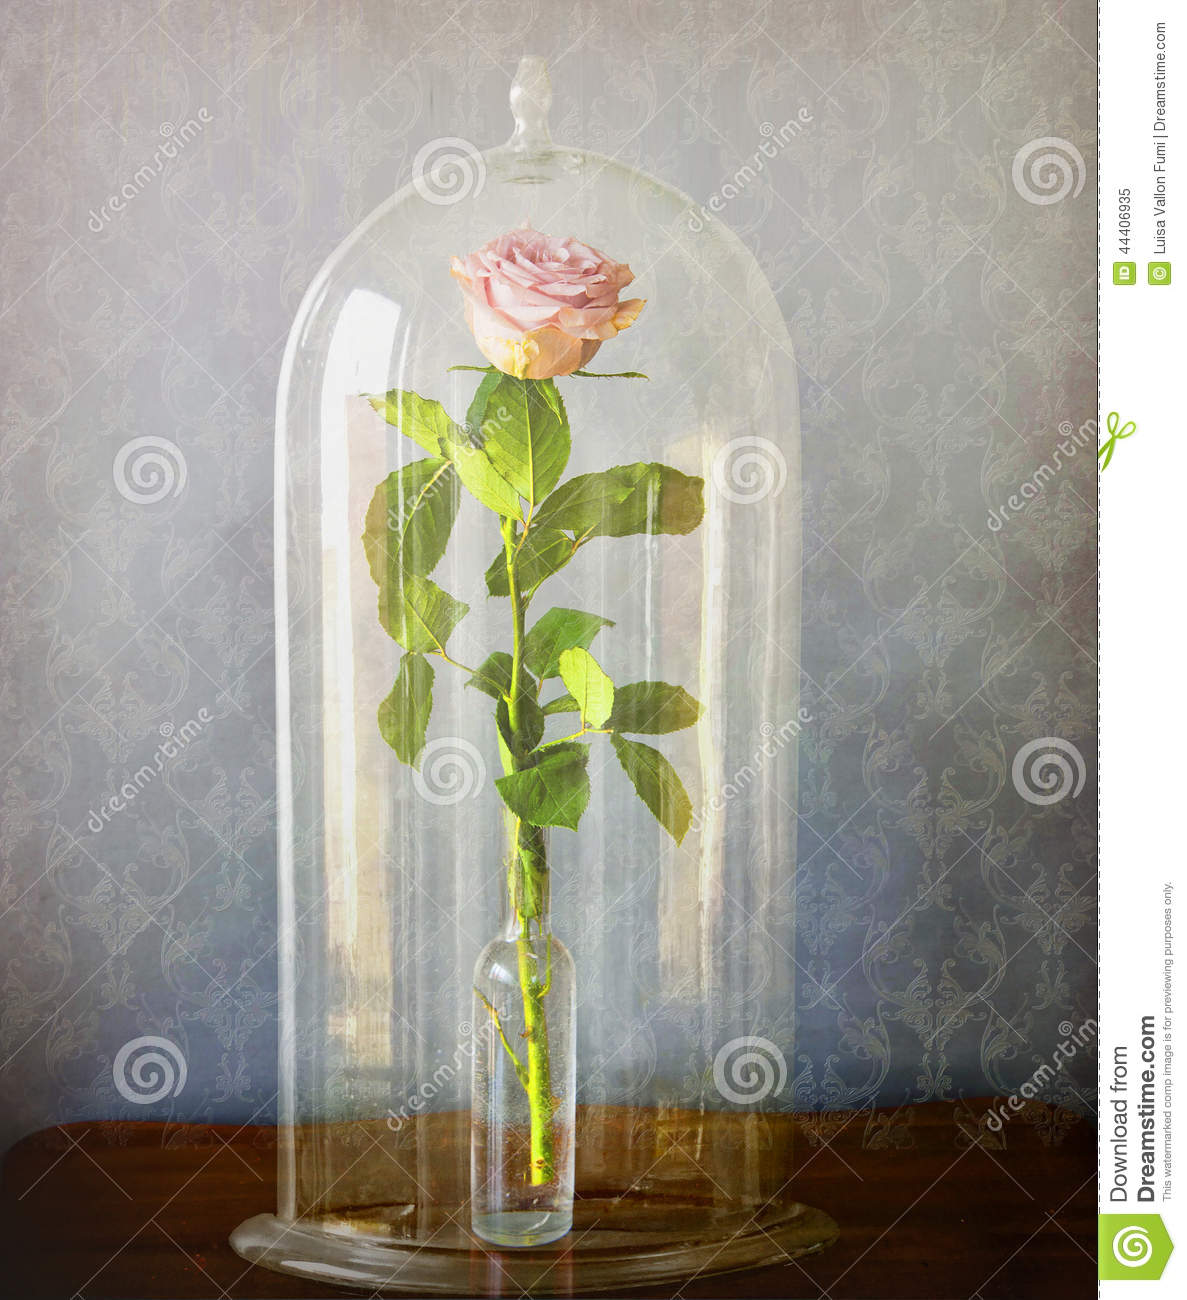 pink rose under glass bell jar stock photo image 44406935. Black Bedroom Furniture Sets. Home Design Ideas